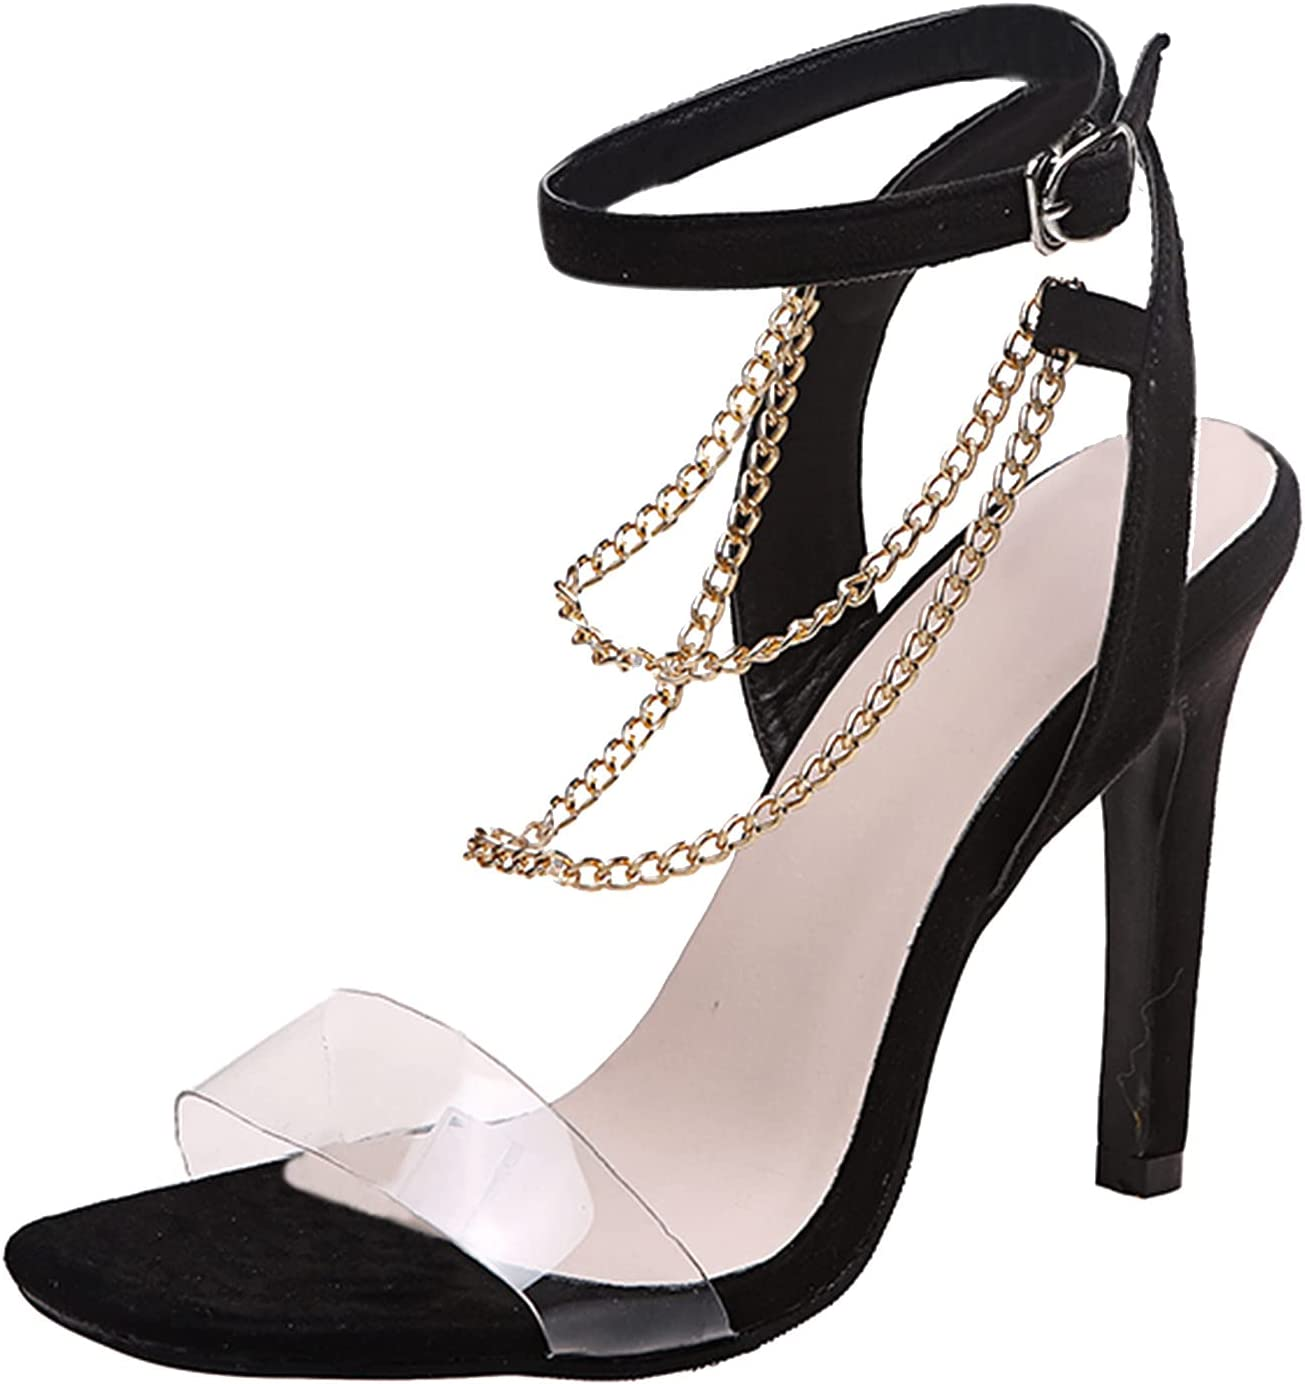 Genuine Popular shop is the lowest price challenge Womens Ladies Sexy High Heel Squared Casual Toe Chain Sandals Bu